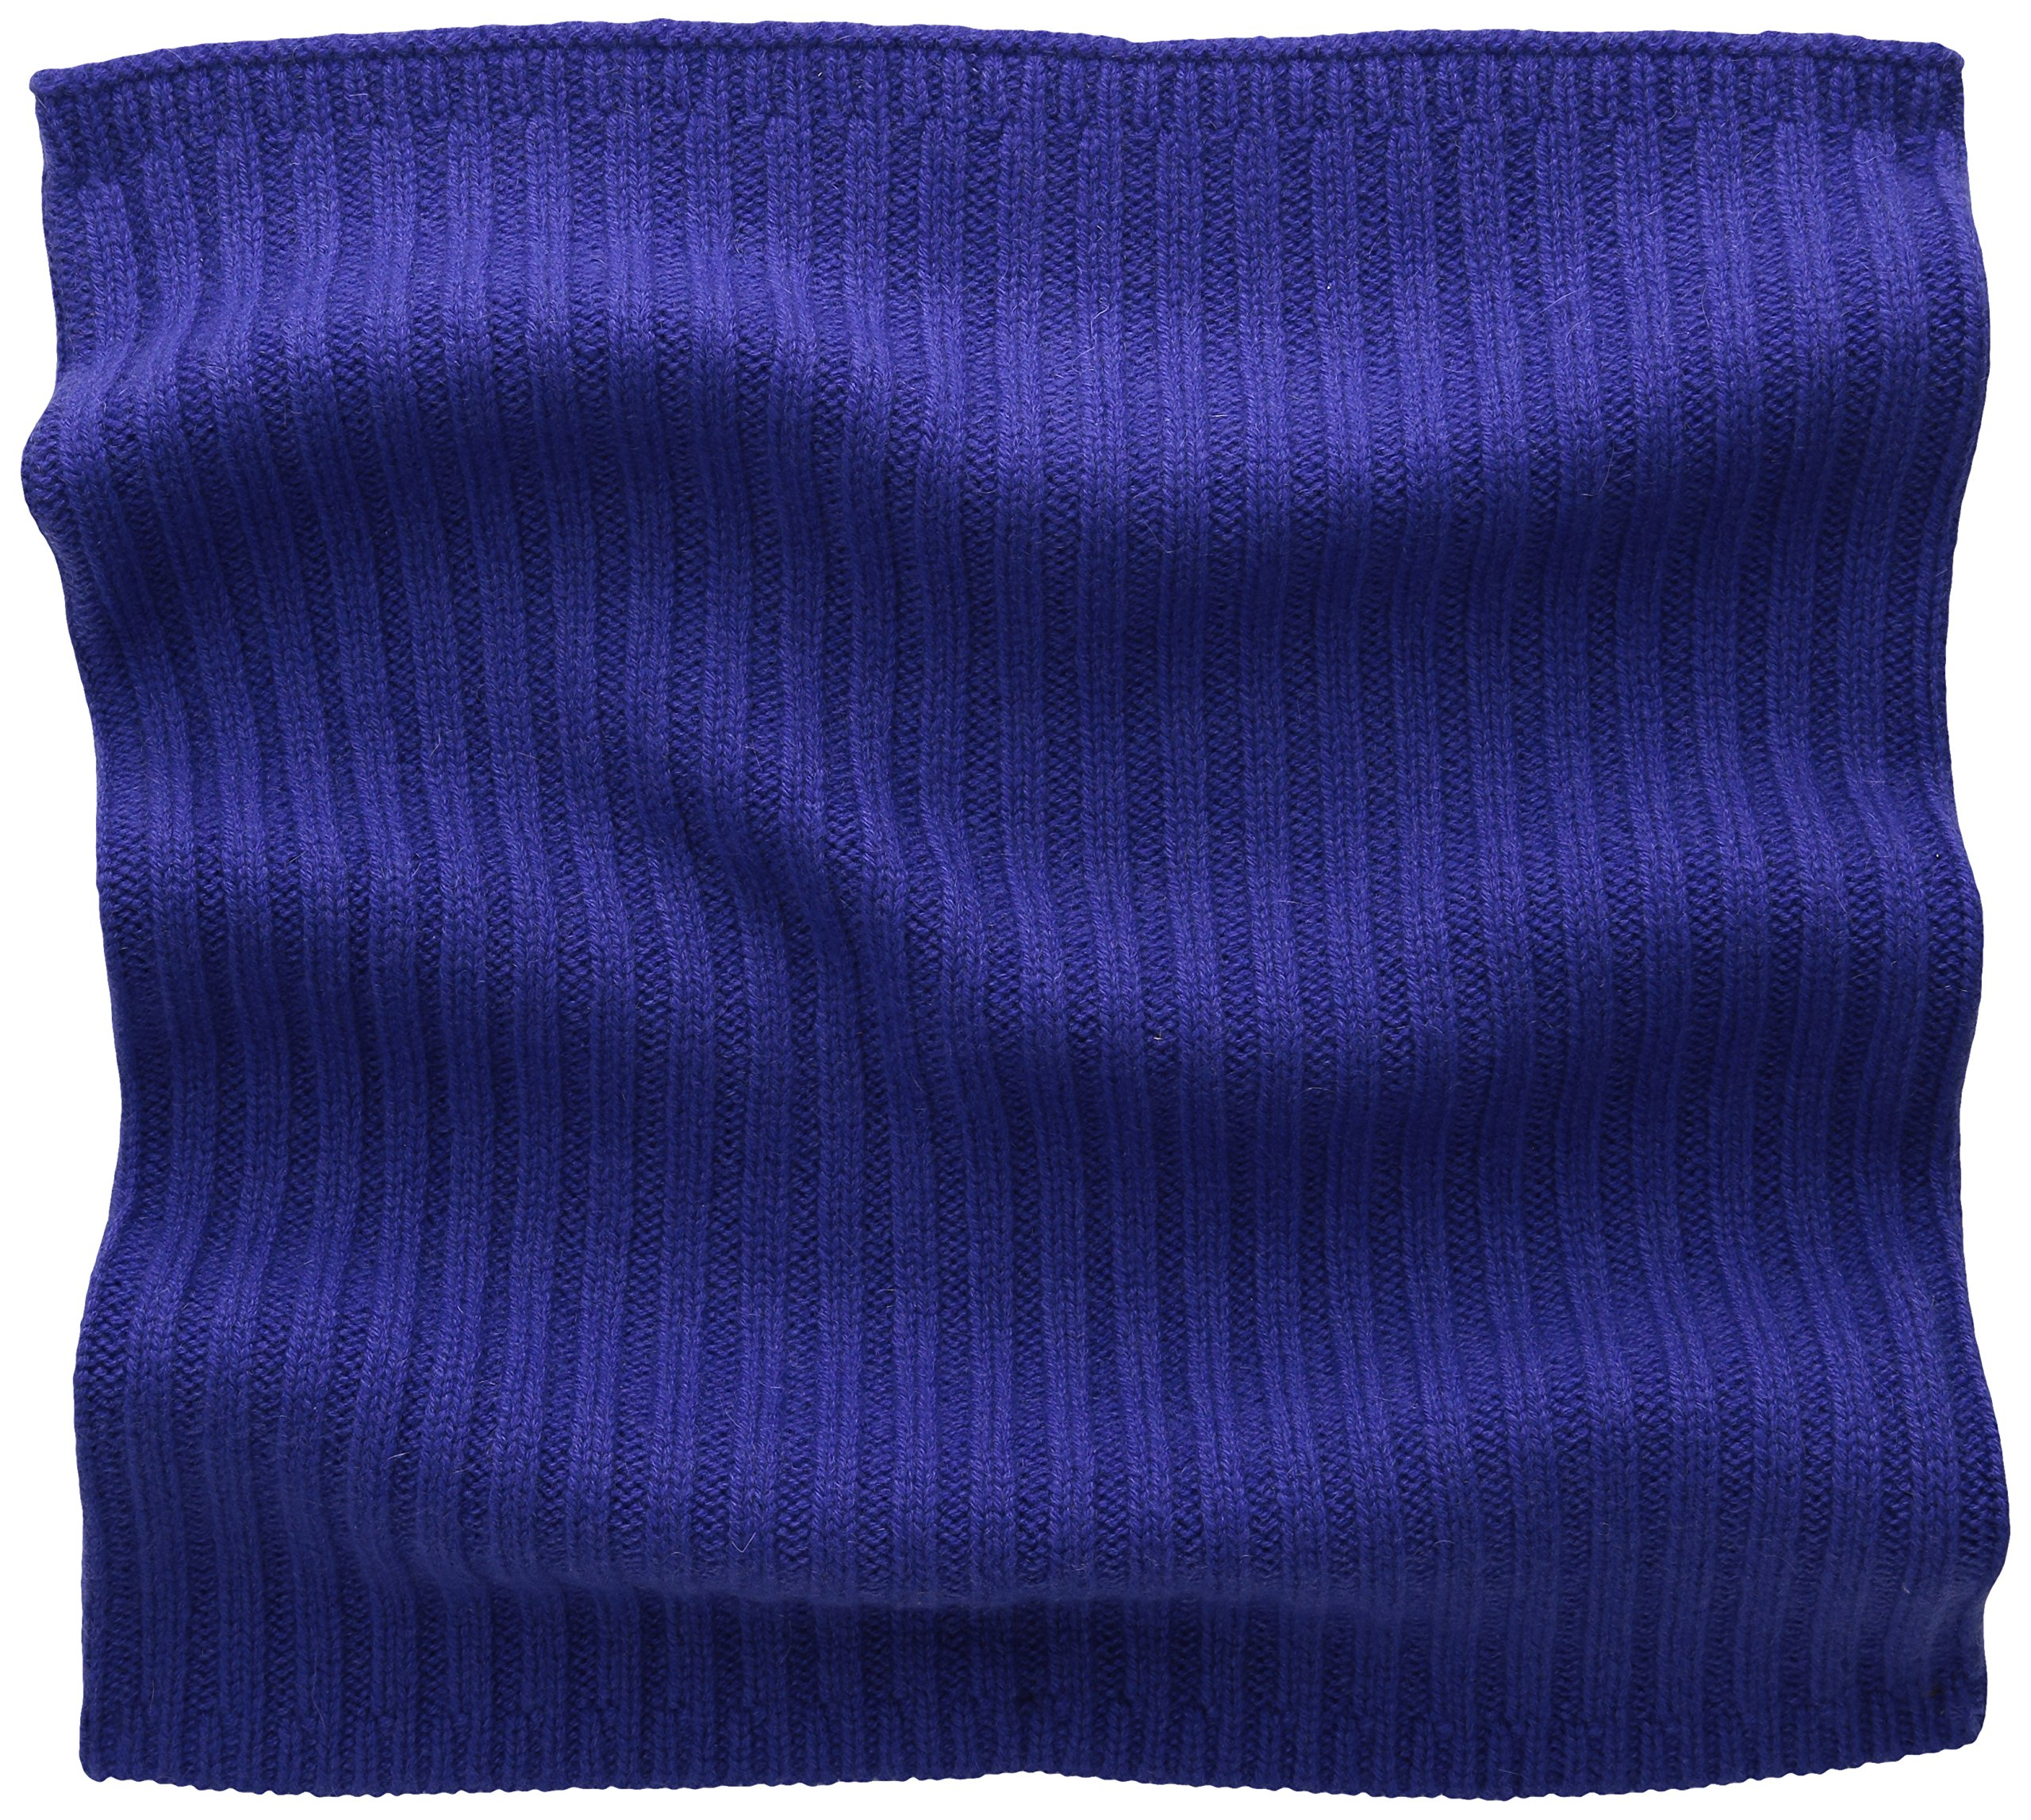 Phenix Cashmere Women's 100 Percent Cashmere Knit Neck Warmer, Plum, One Size